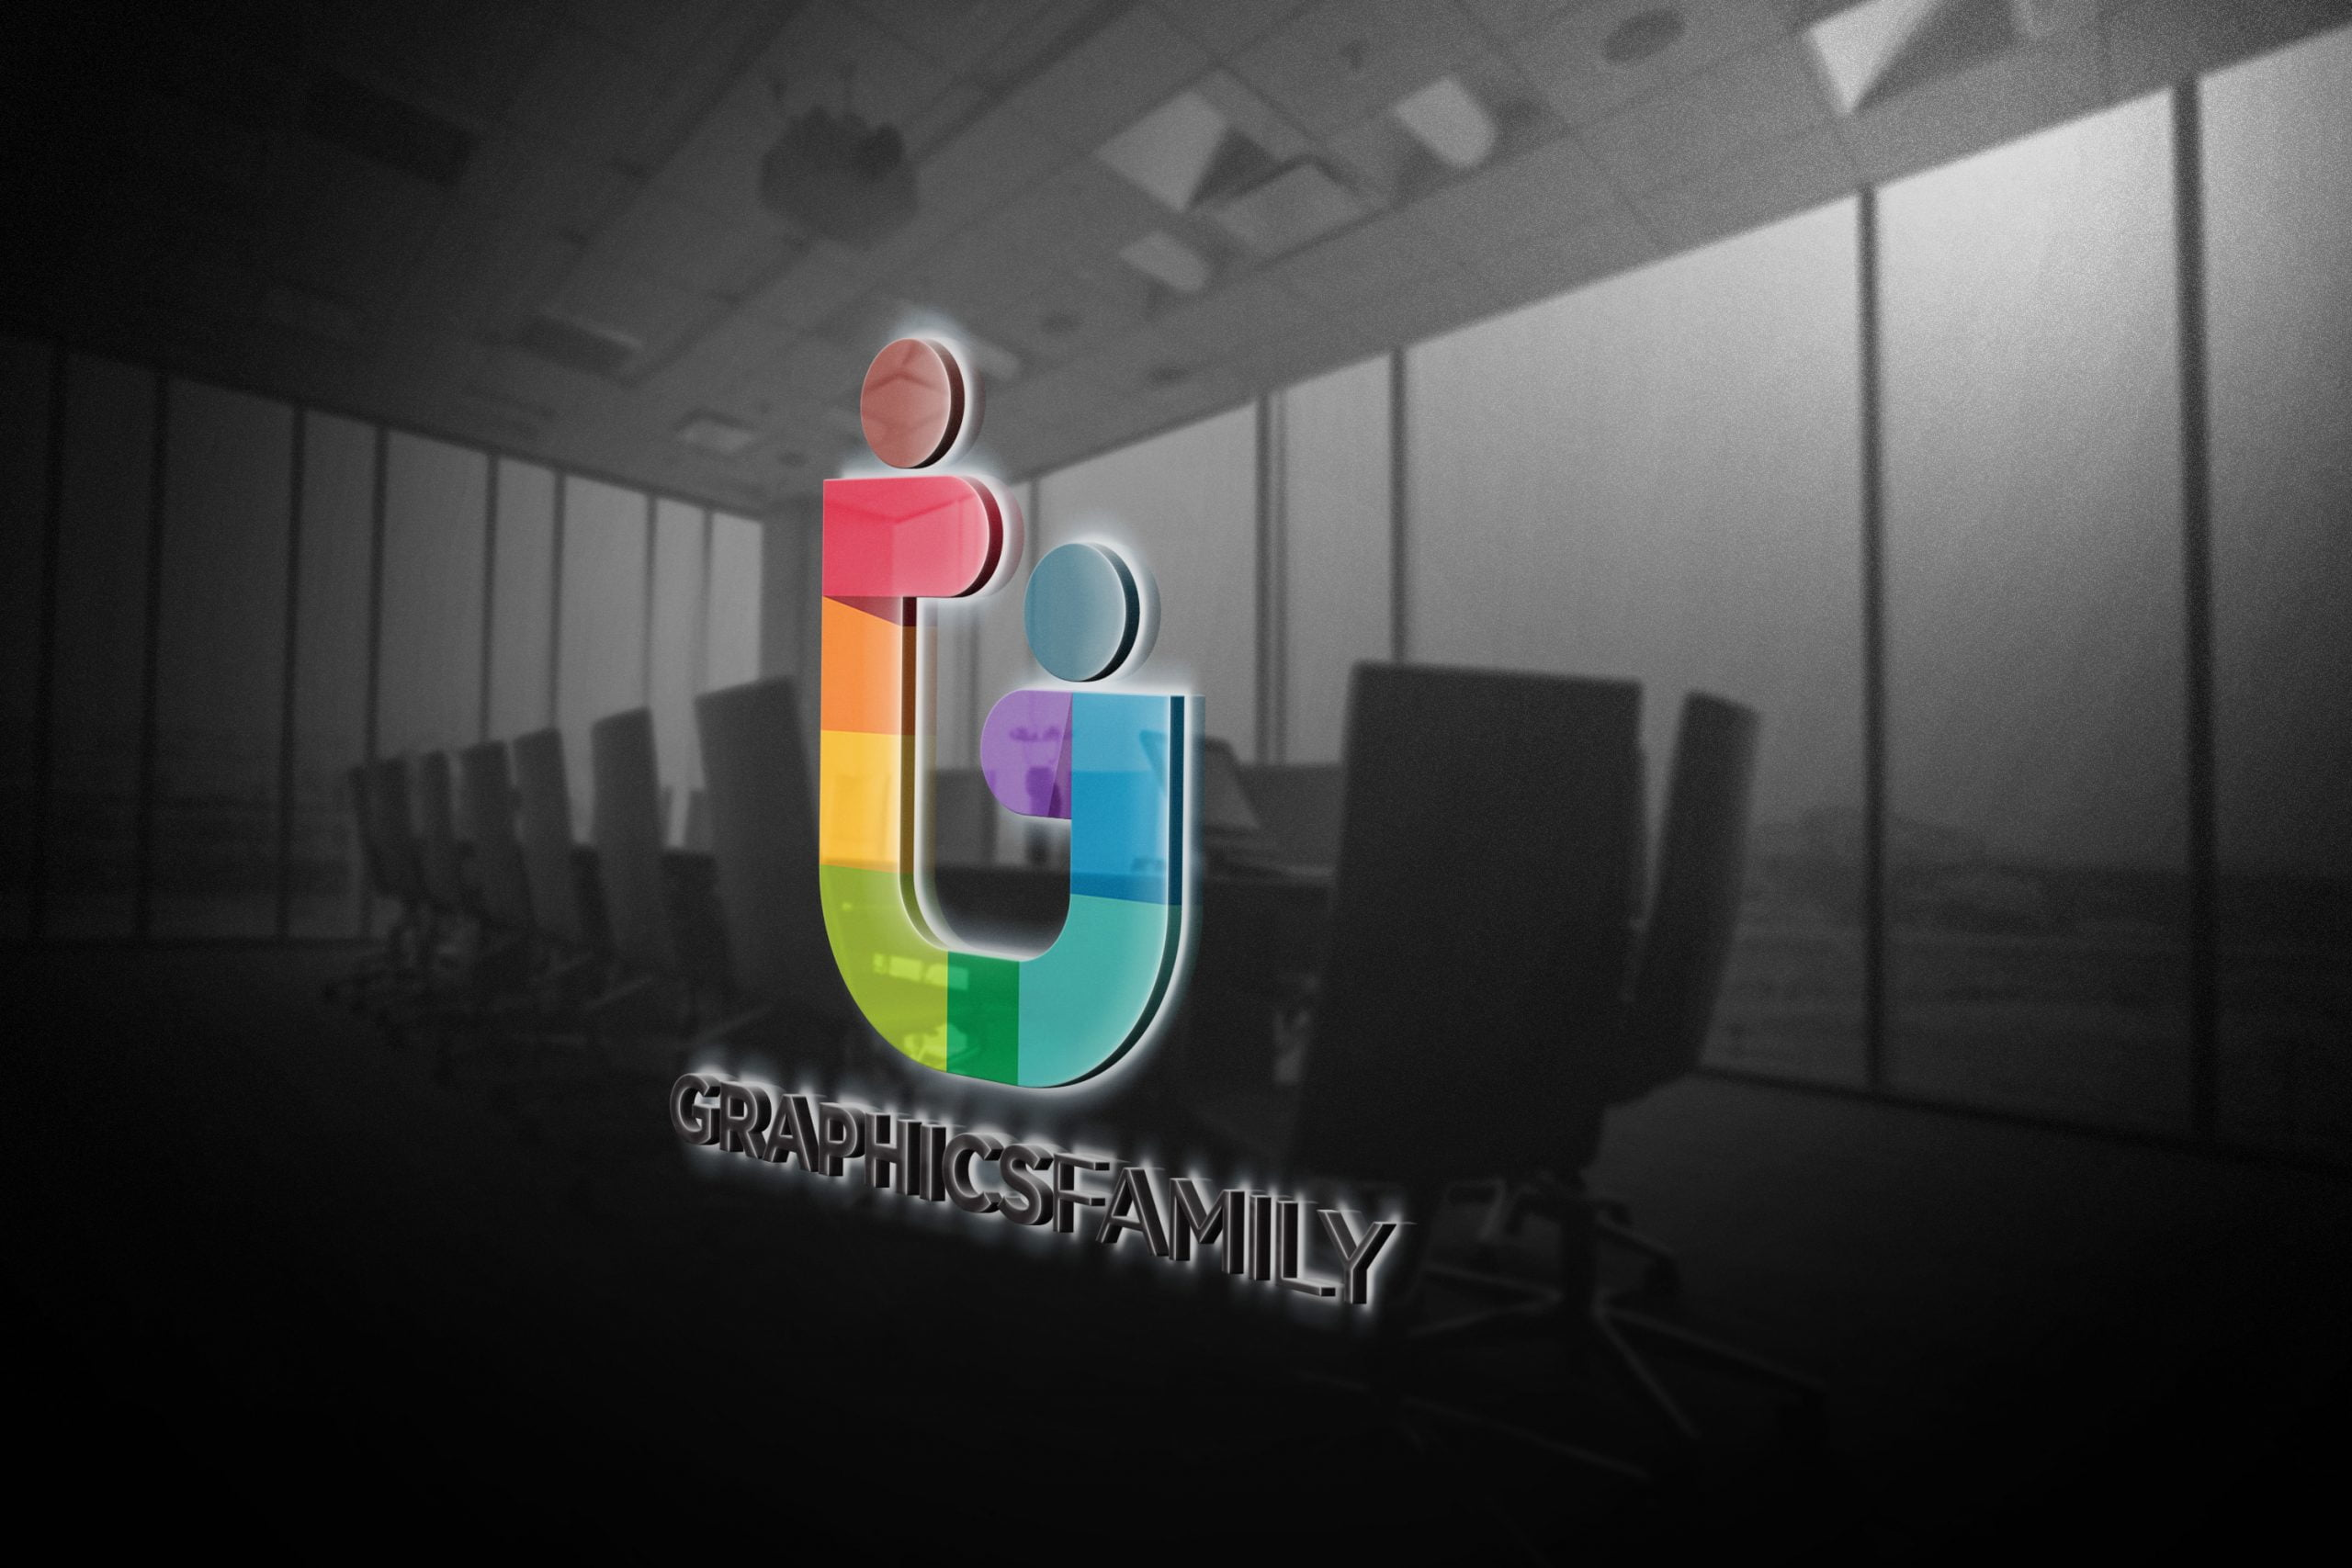 GraphicsFamily-Free-Logo-Mockup-Office-Glass-3D